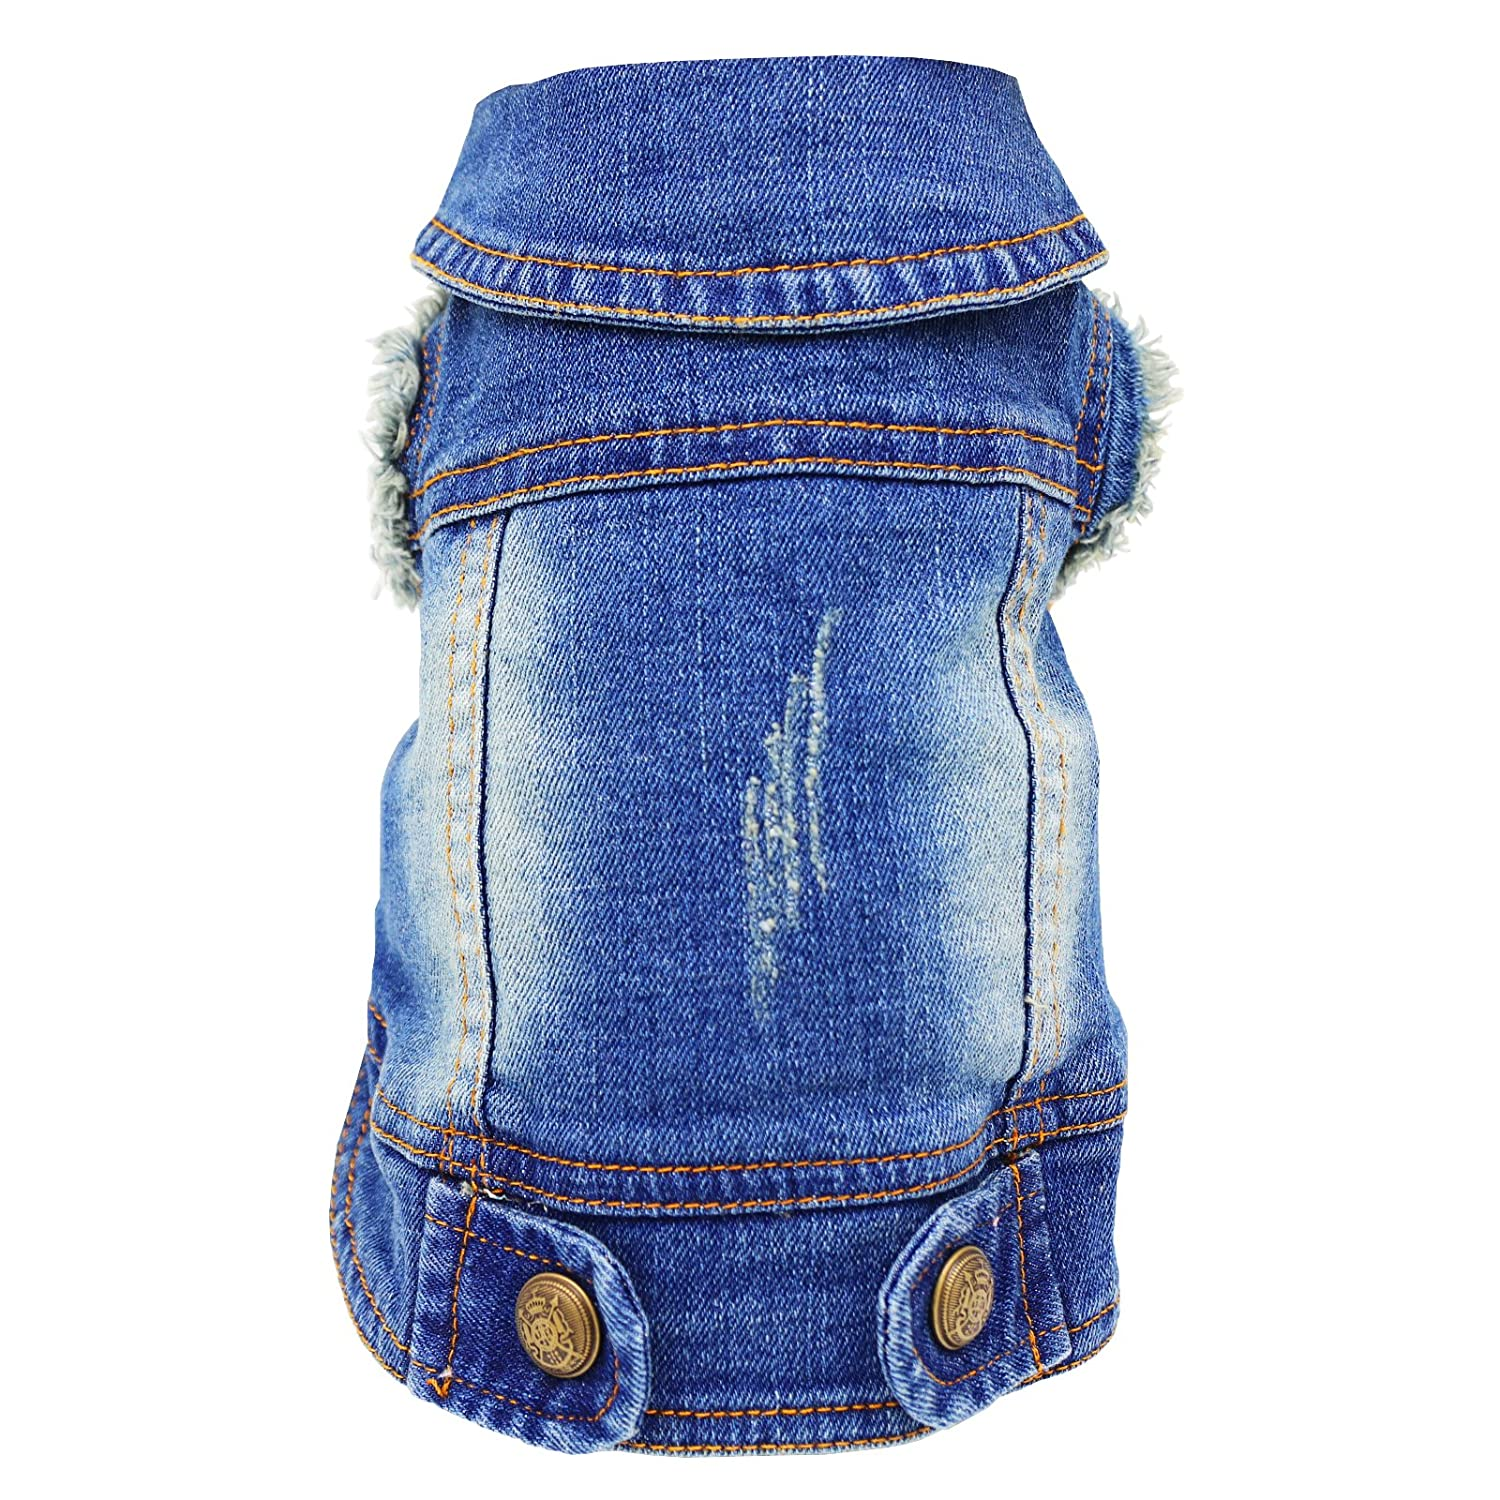 SILD Pet Clothes Dog Jeans Jacket Cool Blue Denim Coat For Small Medium Dogs Lapel Vests Classic Hoodies Puppy Blue Vintage Washed Clothes